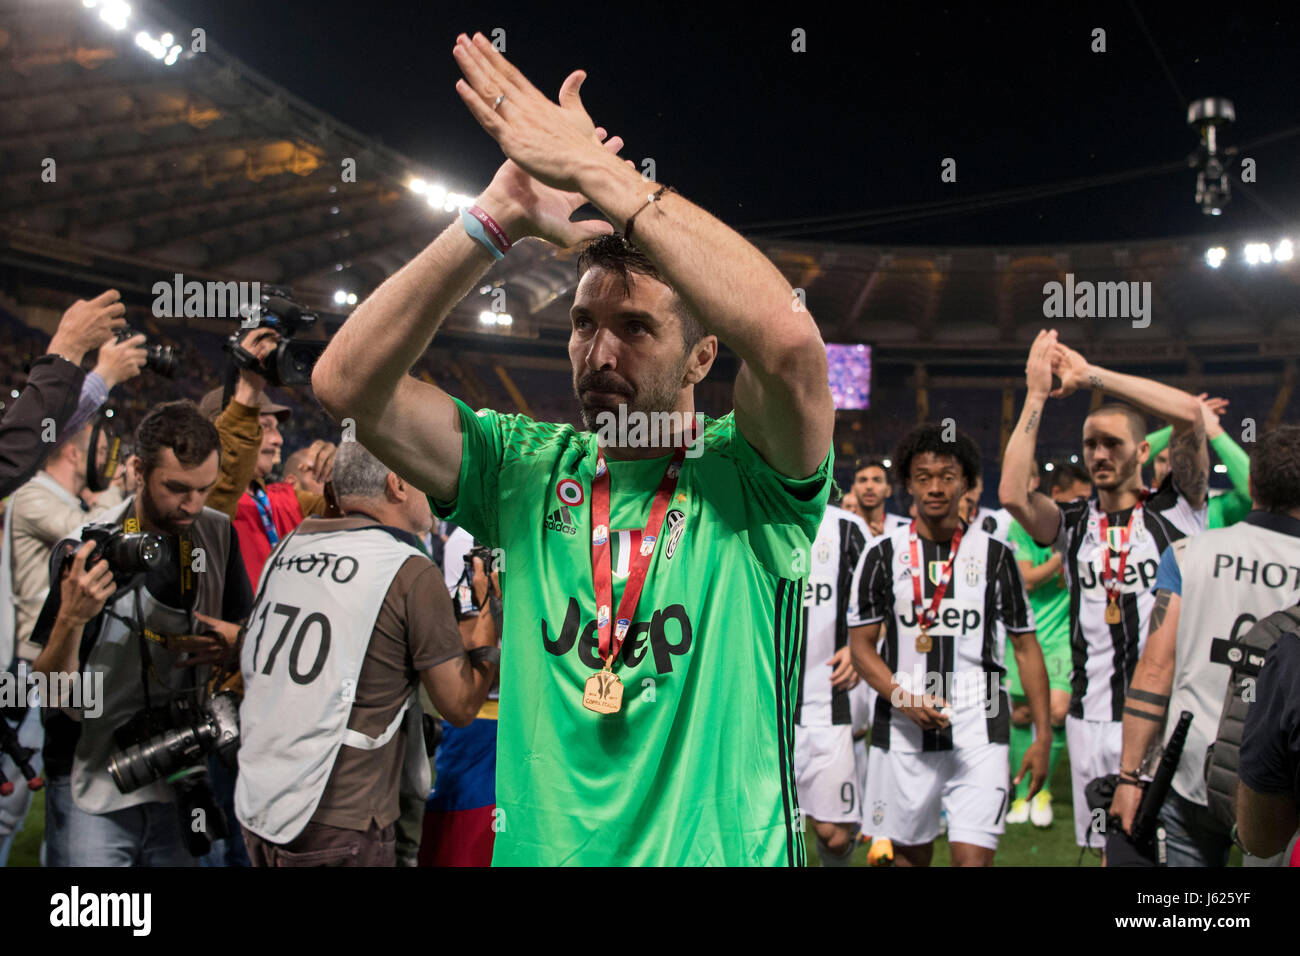 fbf48d773 Gianluigi Buffon (Juventus) Football Soccer   Gianluigi Buffon of Juventus  celebrates after winning the Coppa Italia (TIM Cup) Final match between  Juventus ...